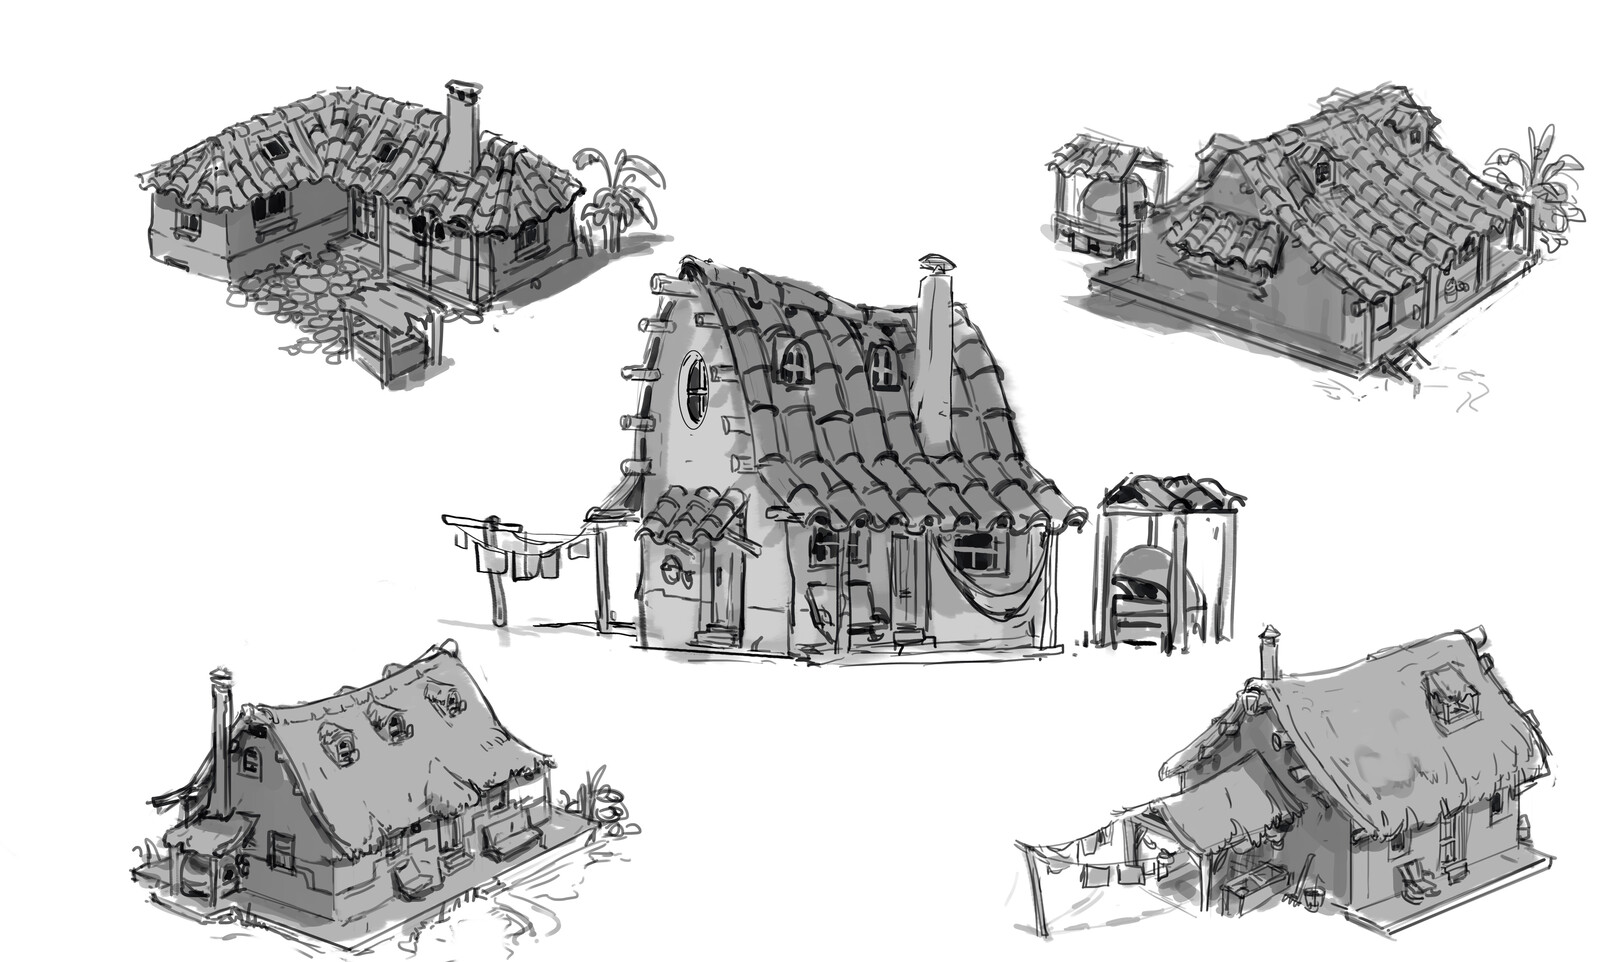 Grandma's House- Concept Sketches